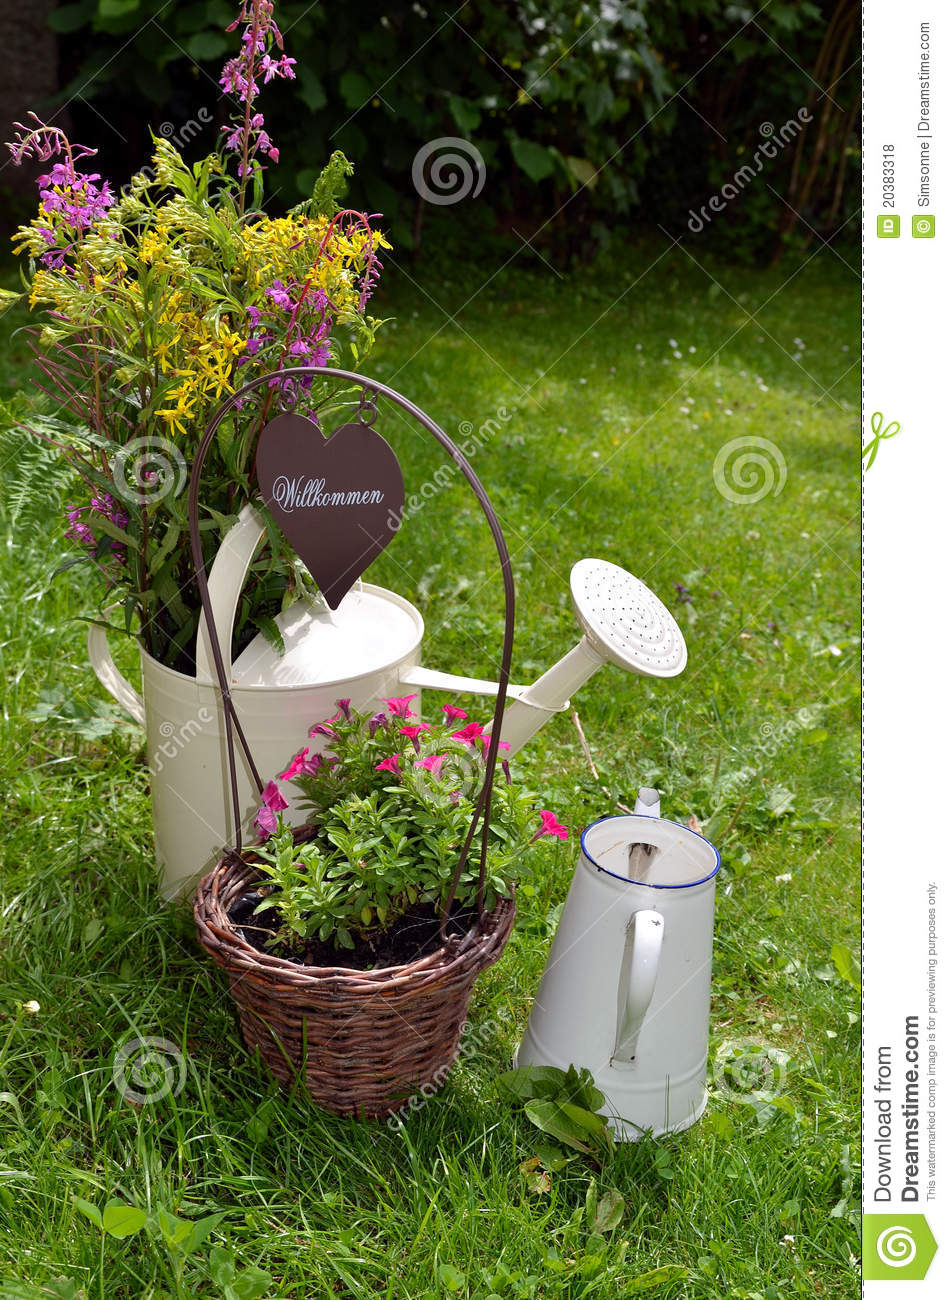 Garden Decoration Flower Heart Royalty Free Stock Photos Image